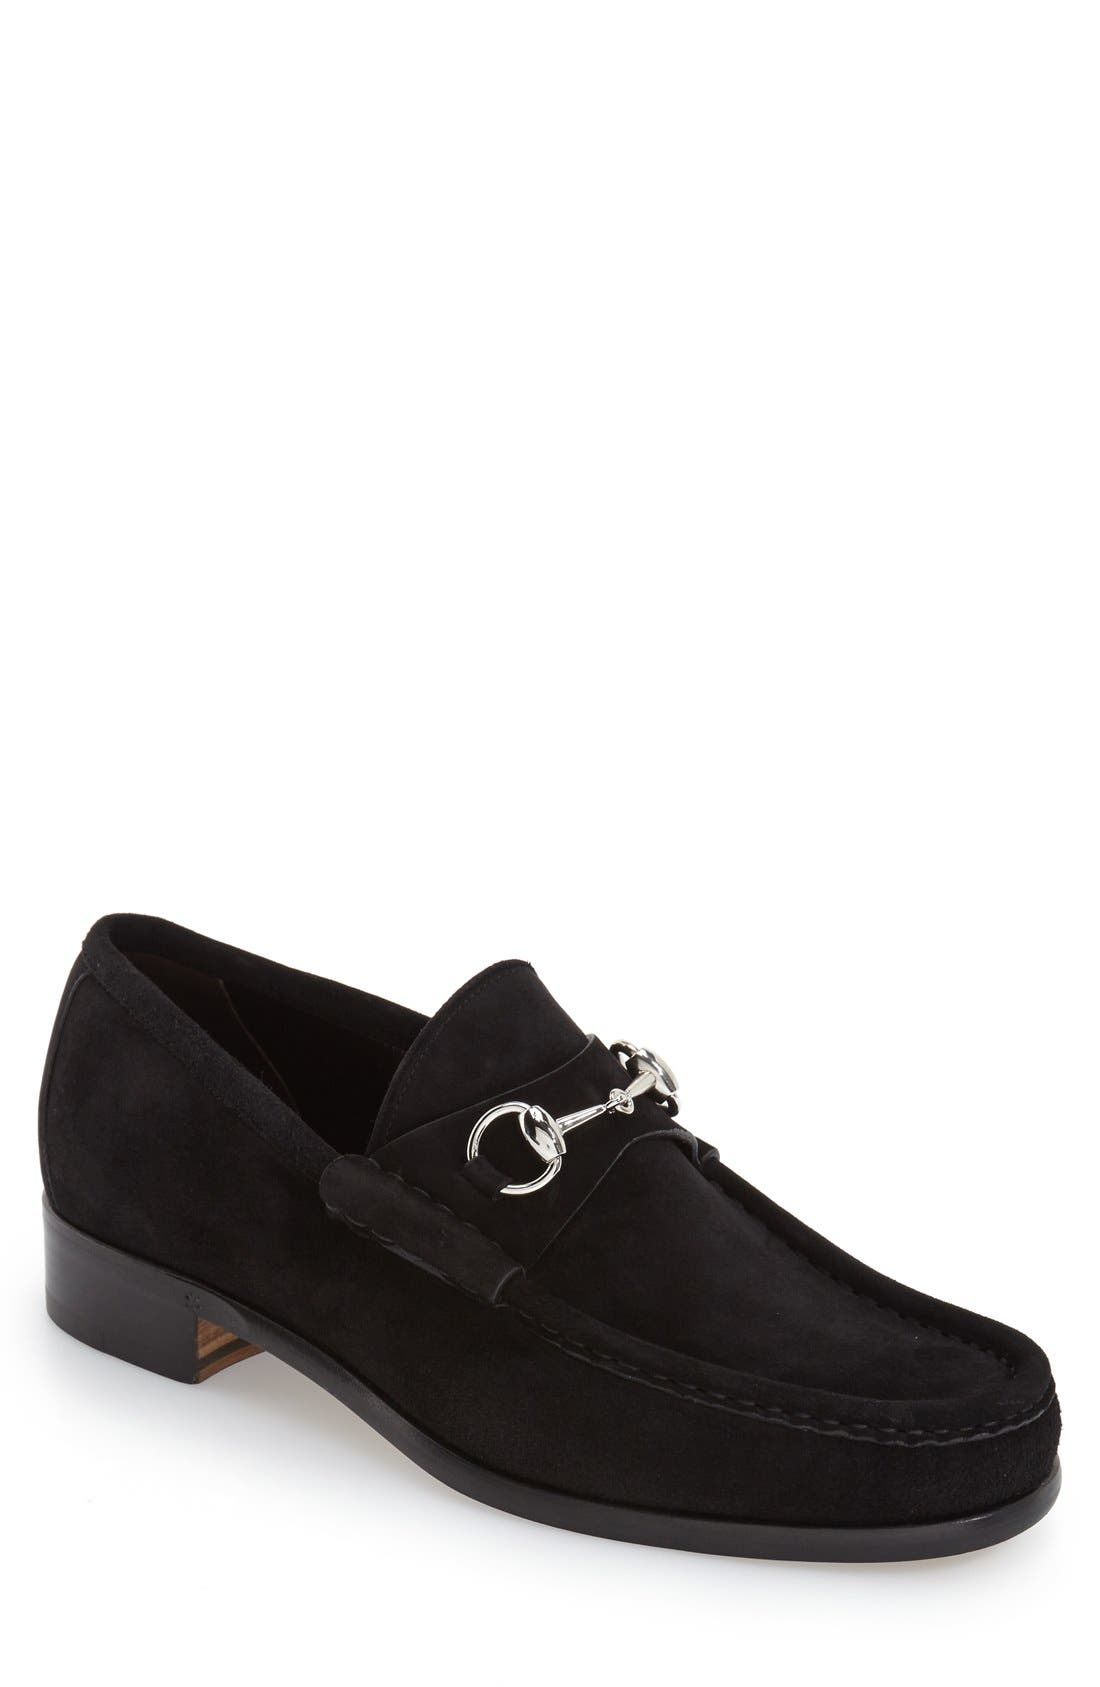 Alternate Image 1 Selected - Gucci Classic Suede Moccasin